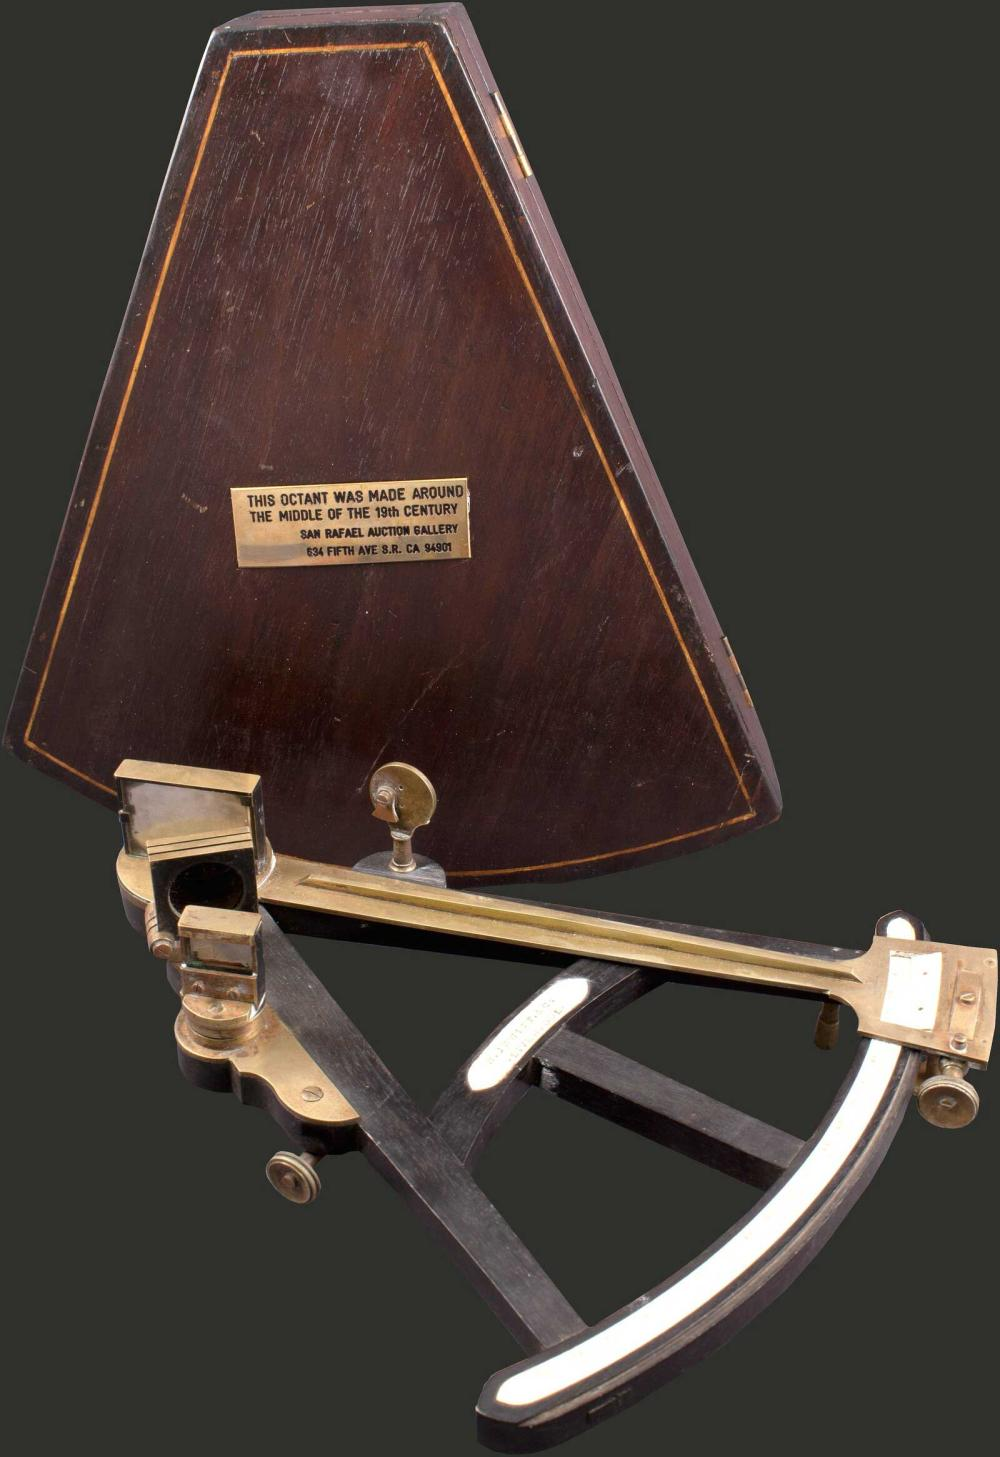 """SEXTANT """"T.L. Ainsley, South Shields"""" with Certificate of Examination dated 1957 in fitted mahogany case. Case measures... - SCIENTIFIC INSTRUMENTS"""